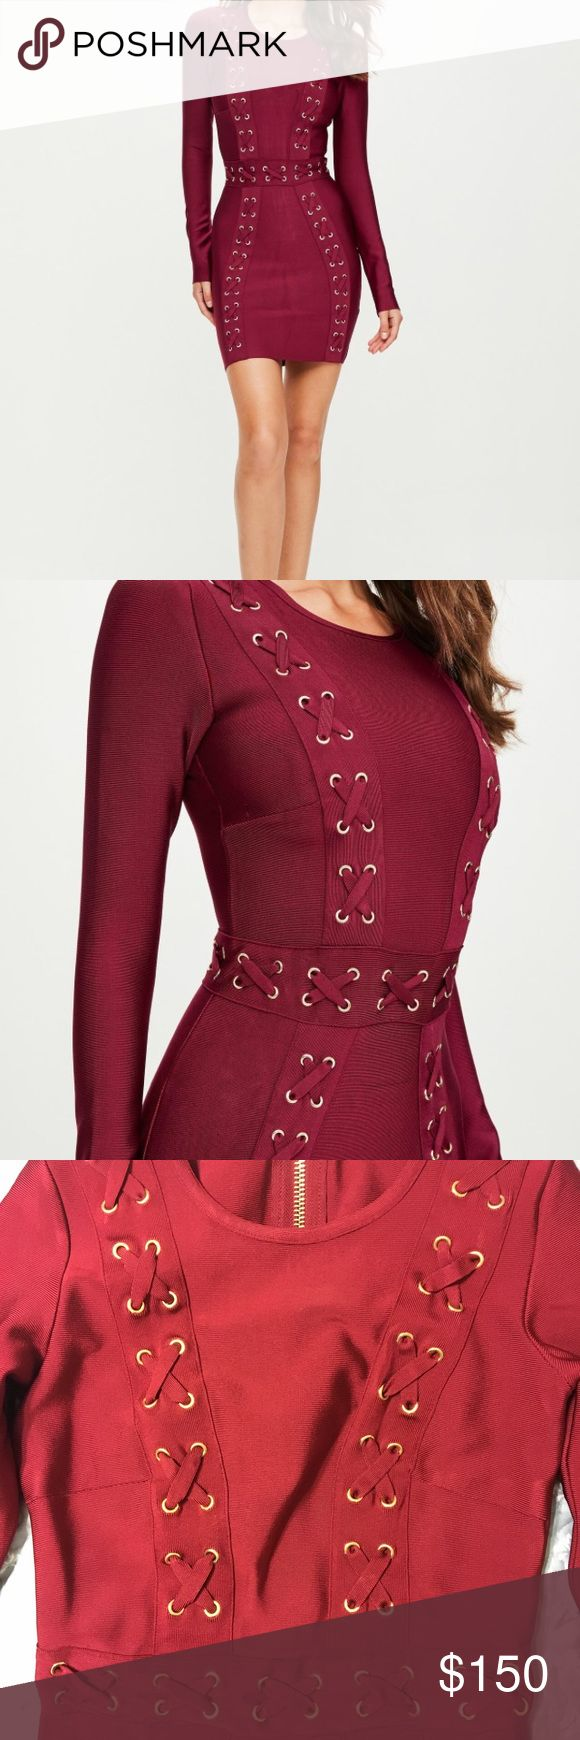 """peace + love red longsleeve bandage dress NWT red dress in a bandage fabric, bodycon fit and long sleeves. US size 4. UK size 8.   regular / stretch fit - exposed back zip   90% viscose 10% elastane   approx length: 84cm/33"""" (based on a uk size 8 sample)   The model is 5'9"""" hand wash Missguided Dresses Midi"""